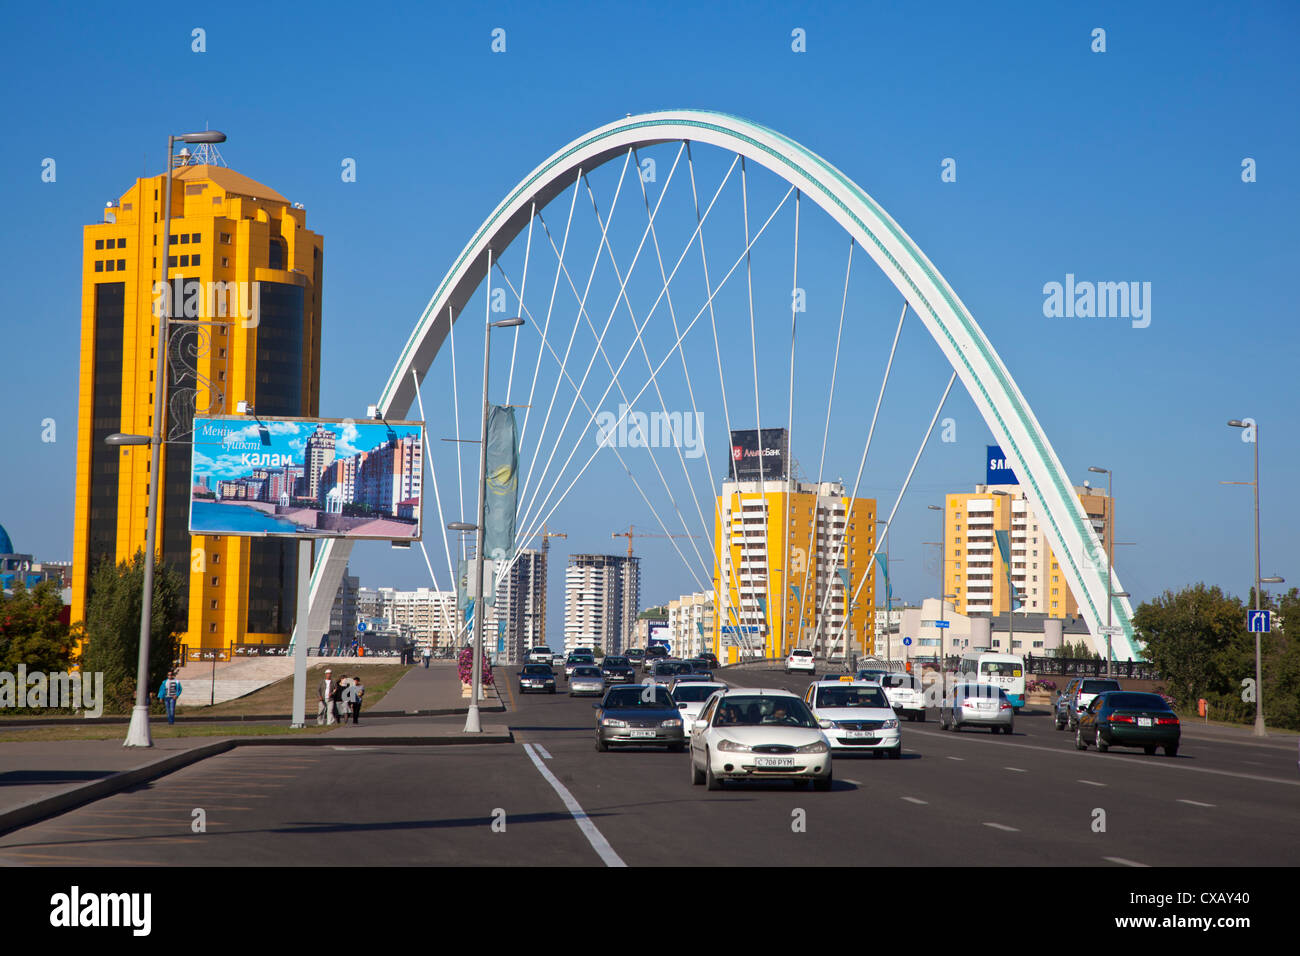 Traffic on bridge over the Ishim River, looking towards the old city, Astana, Kazakhstan, Central Asia, Asia - Stock Image